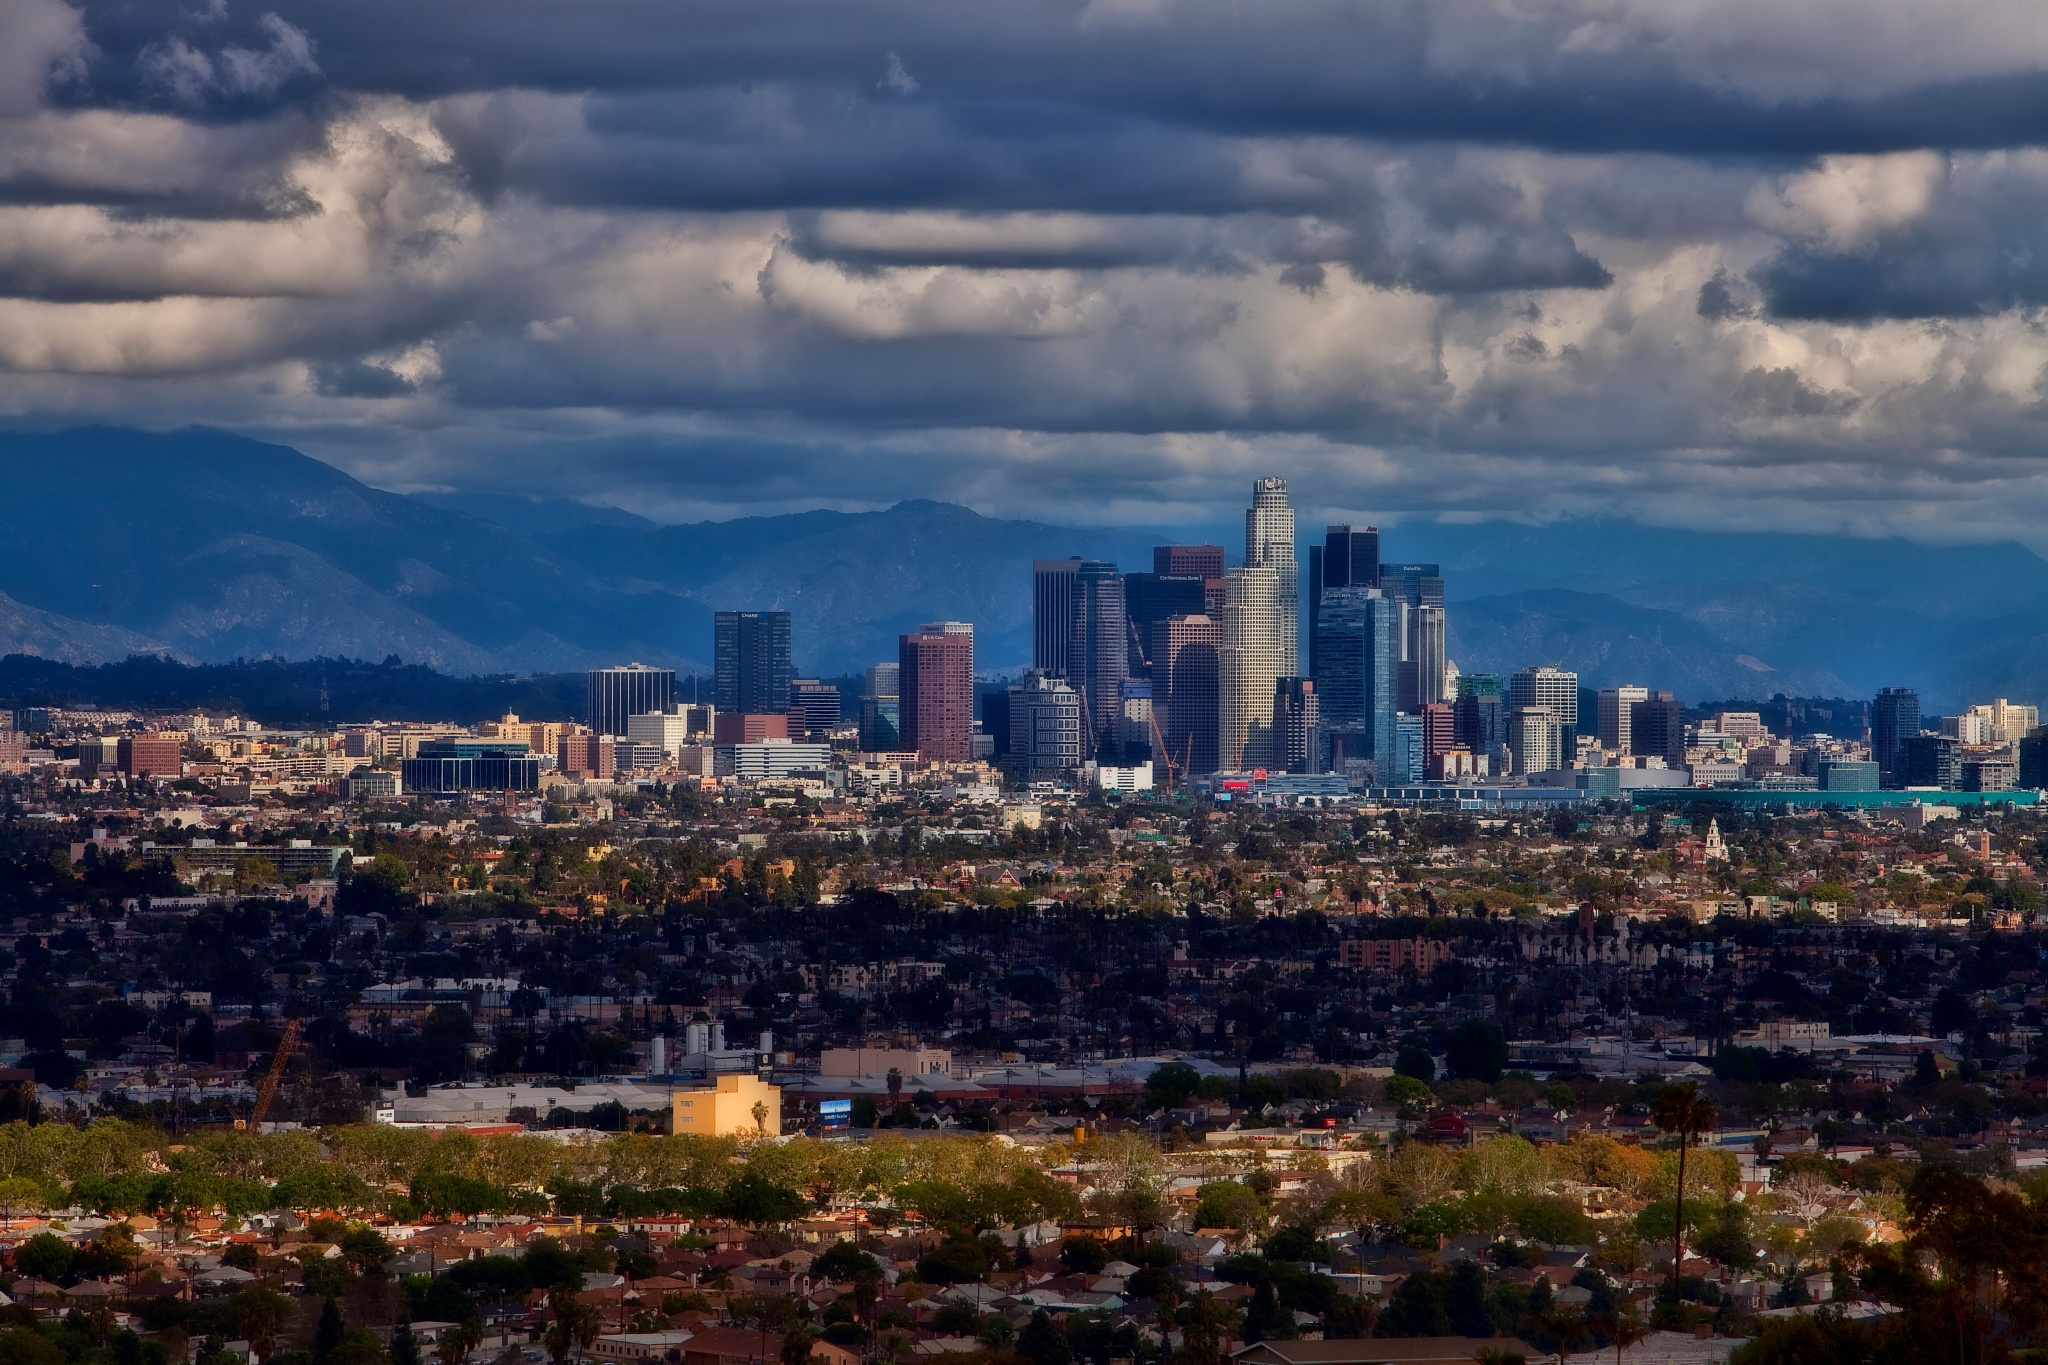 Los Angeles by Stevens Ross